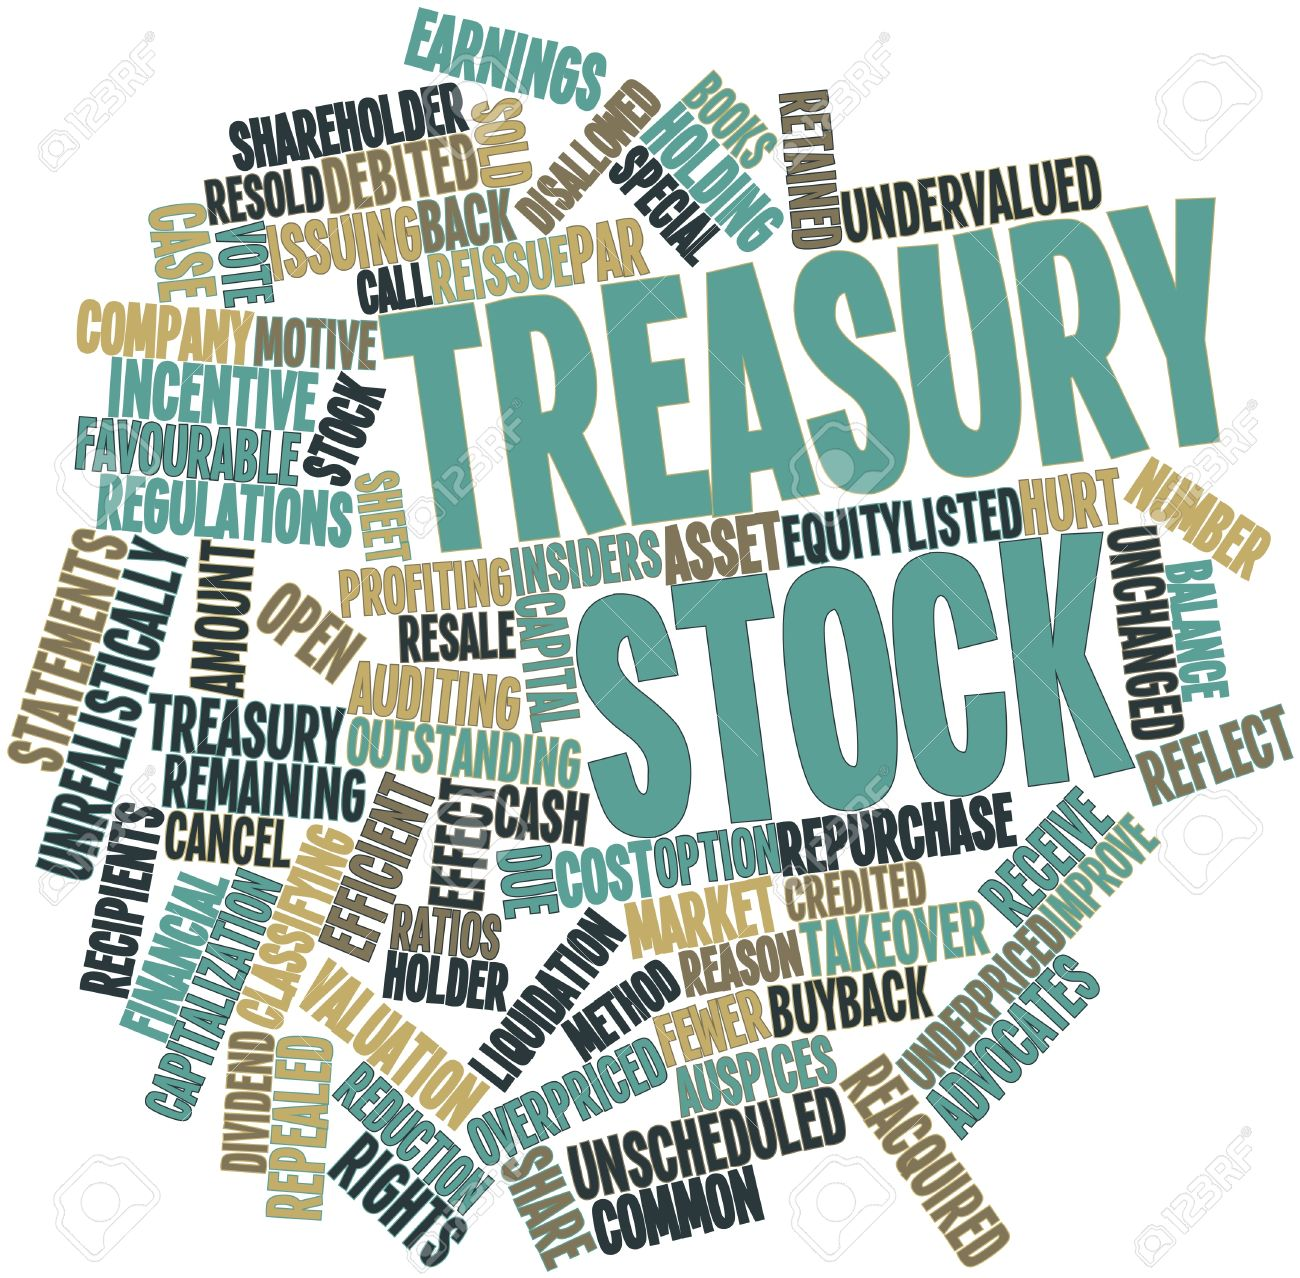 Abstract word cloud for Treasury stock with related tags and